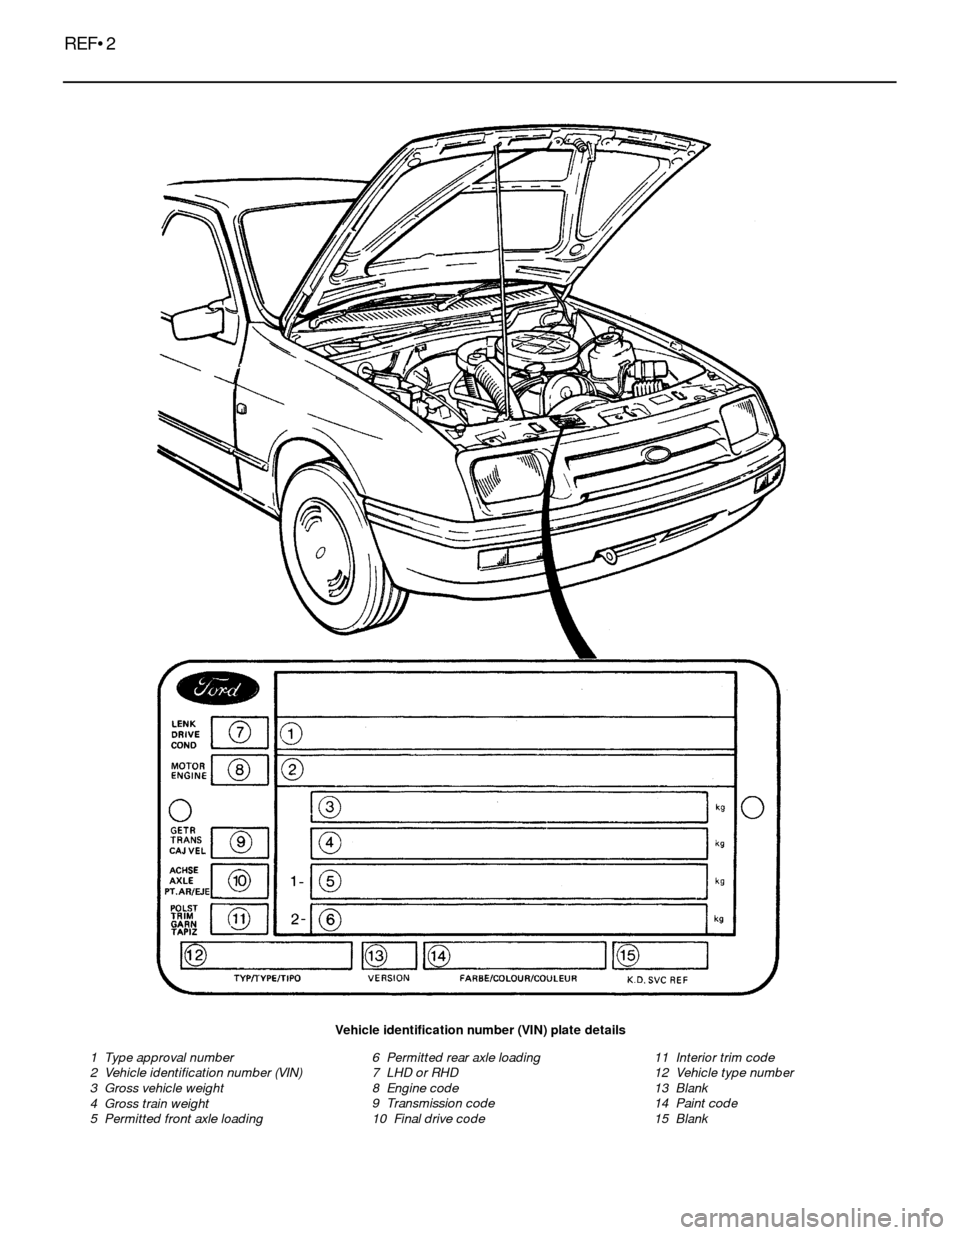 FORD SIERRA 1993 2.G Reference Workshop Manual, Page 2